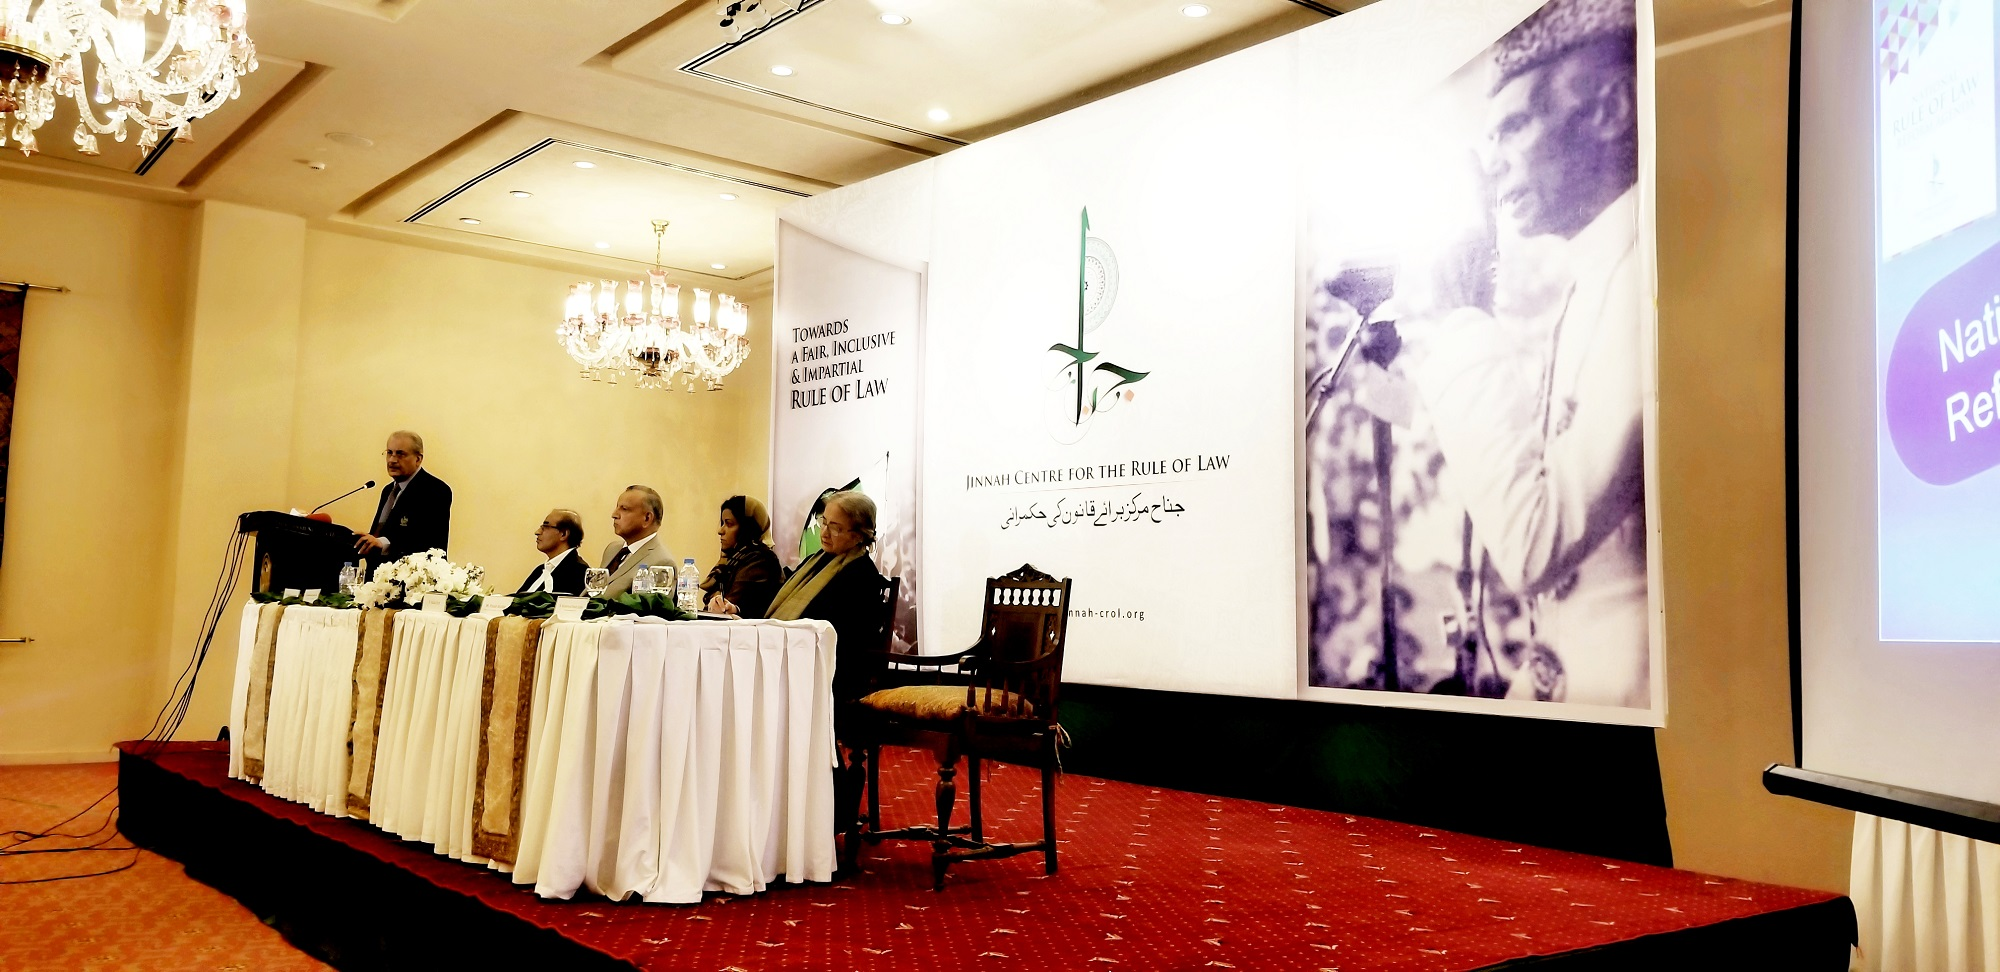 Launching ceremony Jinnah Center for the Rule of Law and the National Rule of Law Reform Agenda